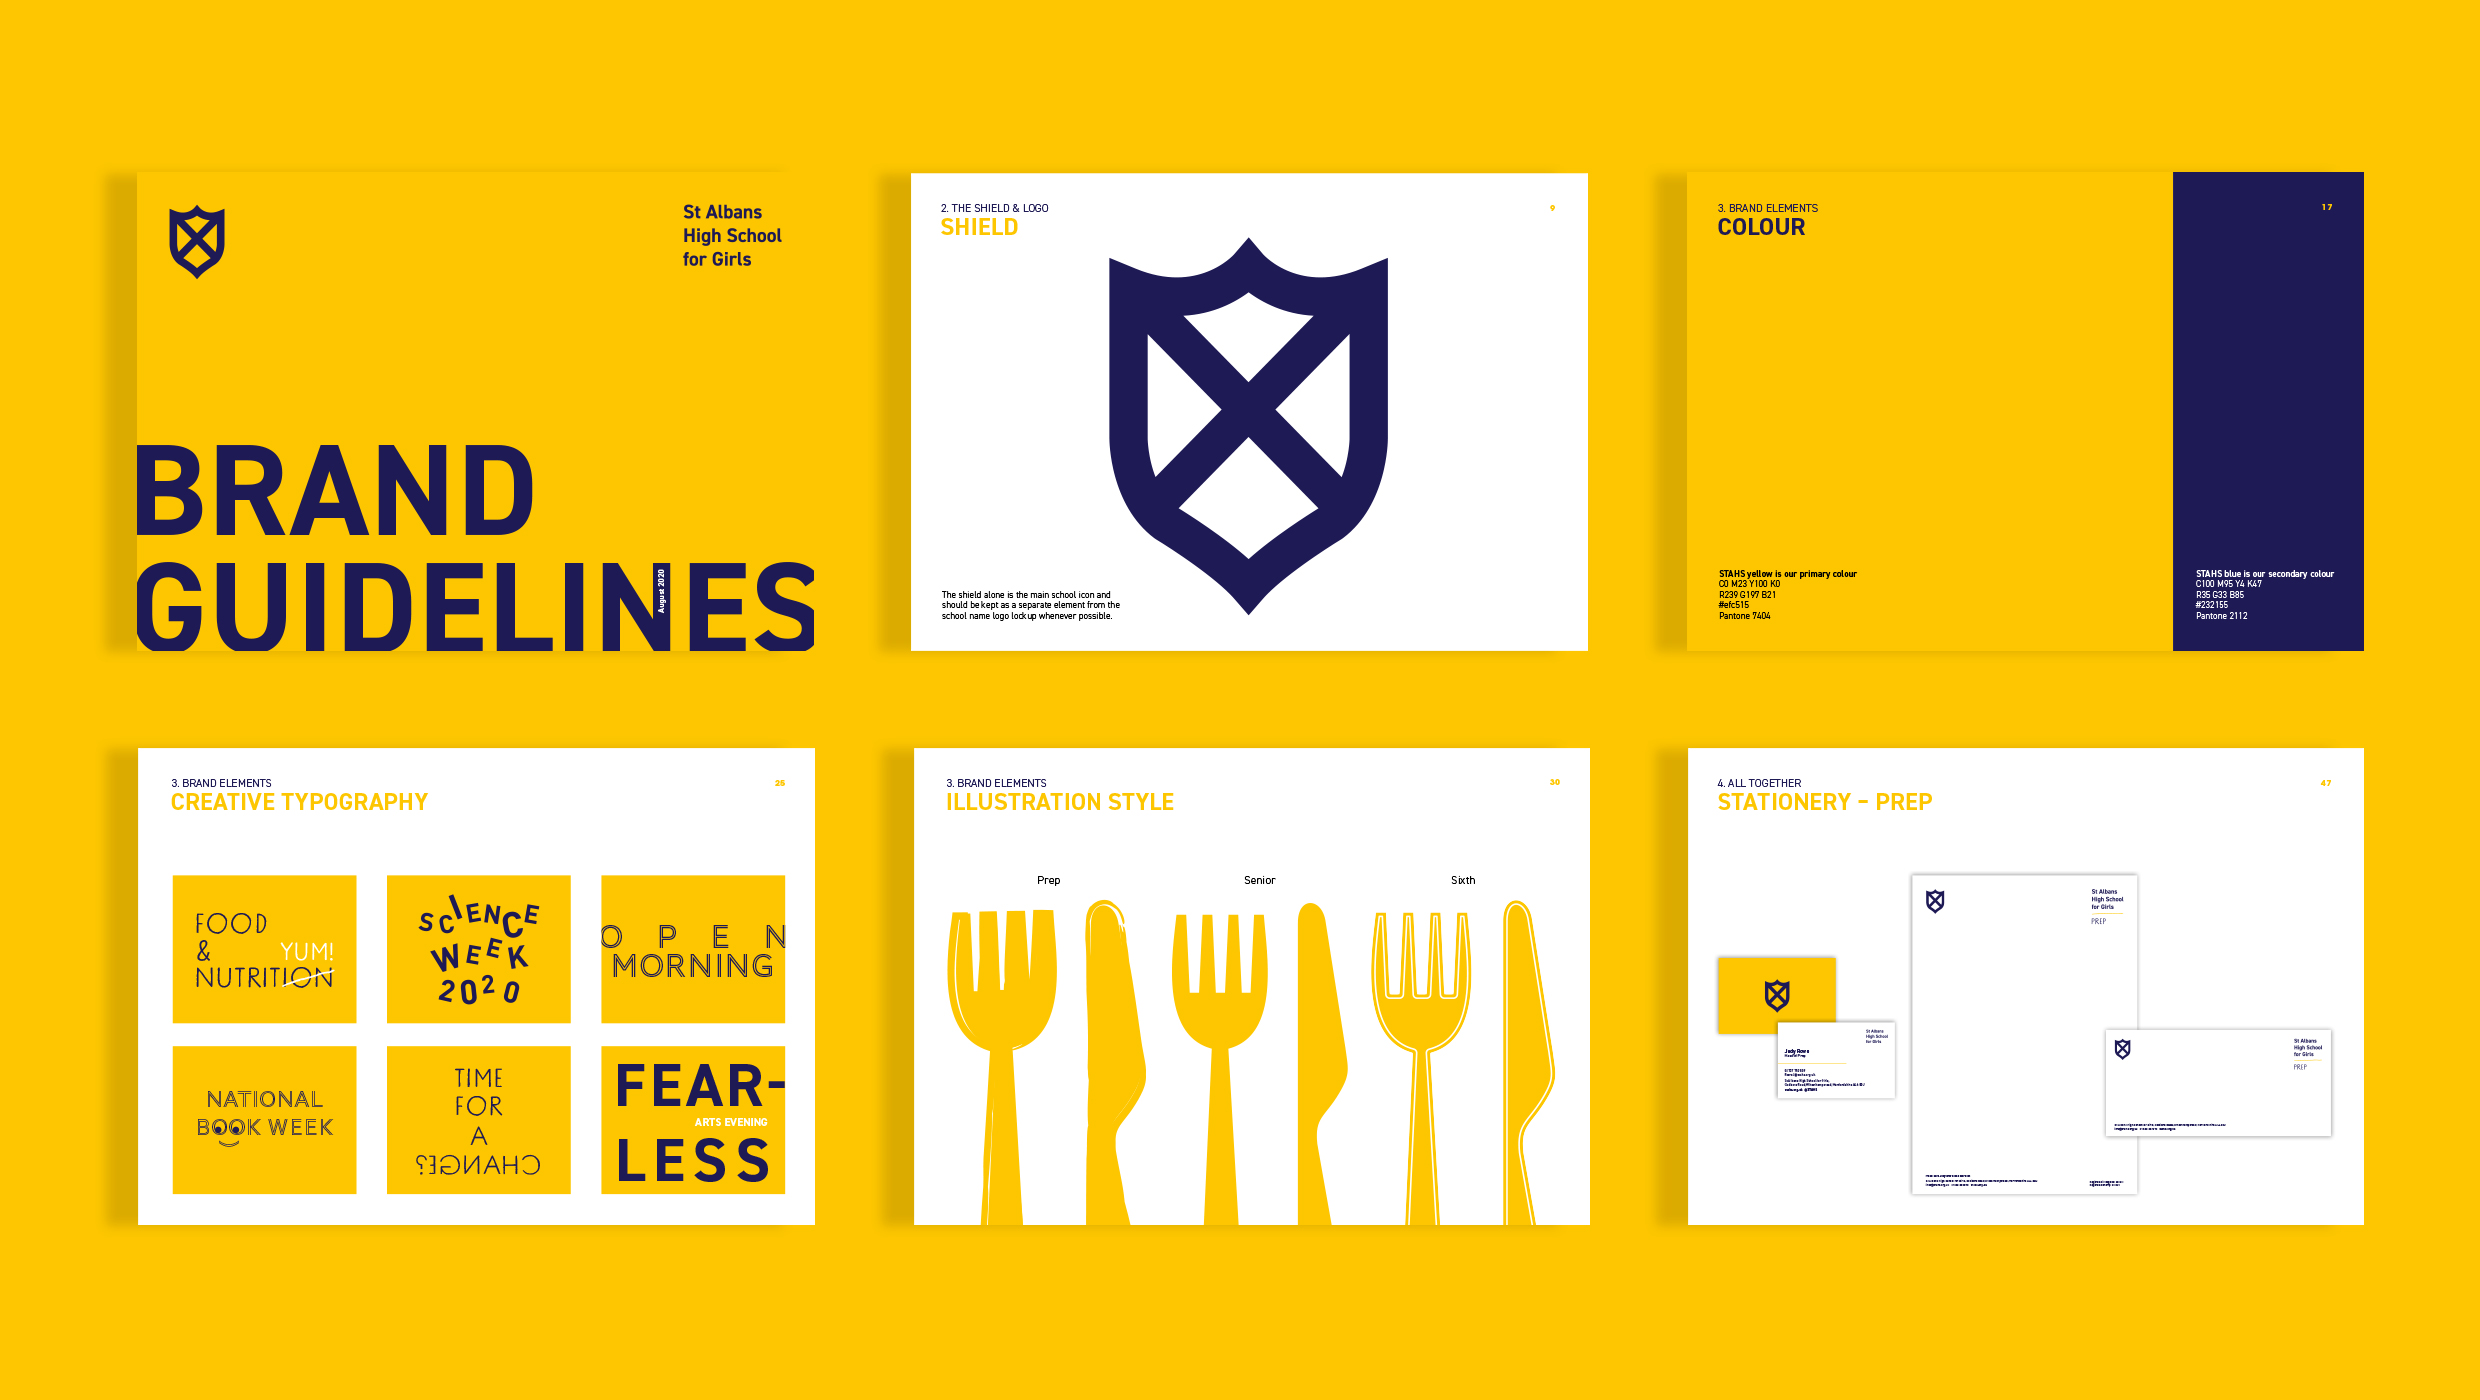 A word-centric brand for St Albans High School for Girls